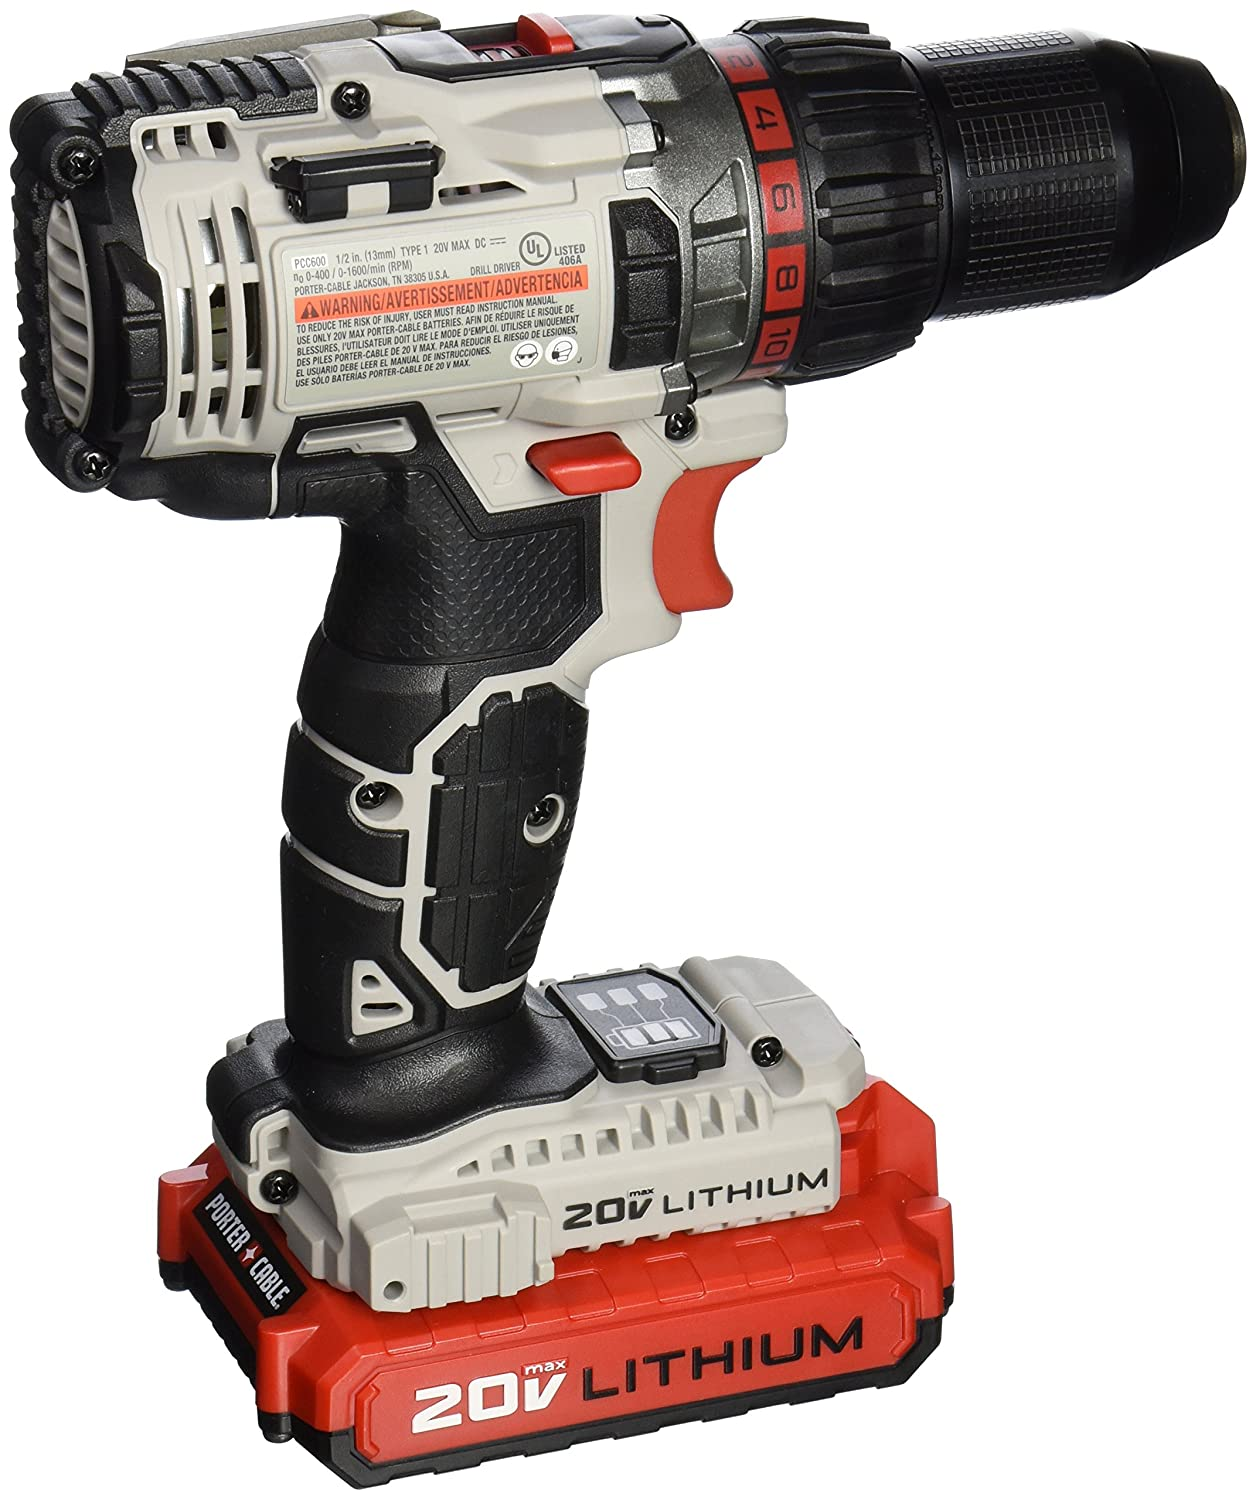 porter cable power tools. amazon.com: porter-cable pcc606la 20-volt 1/2-inch lithium-ion drill/driver kit (one battery): home improvement porter cable power tools